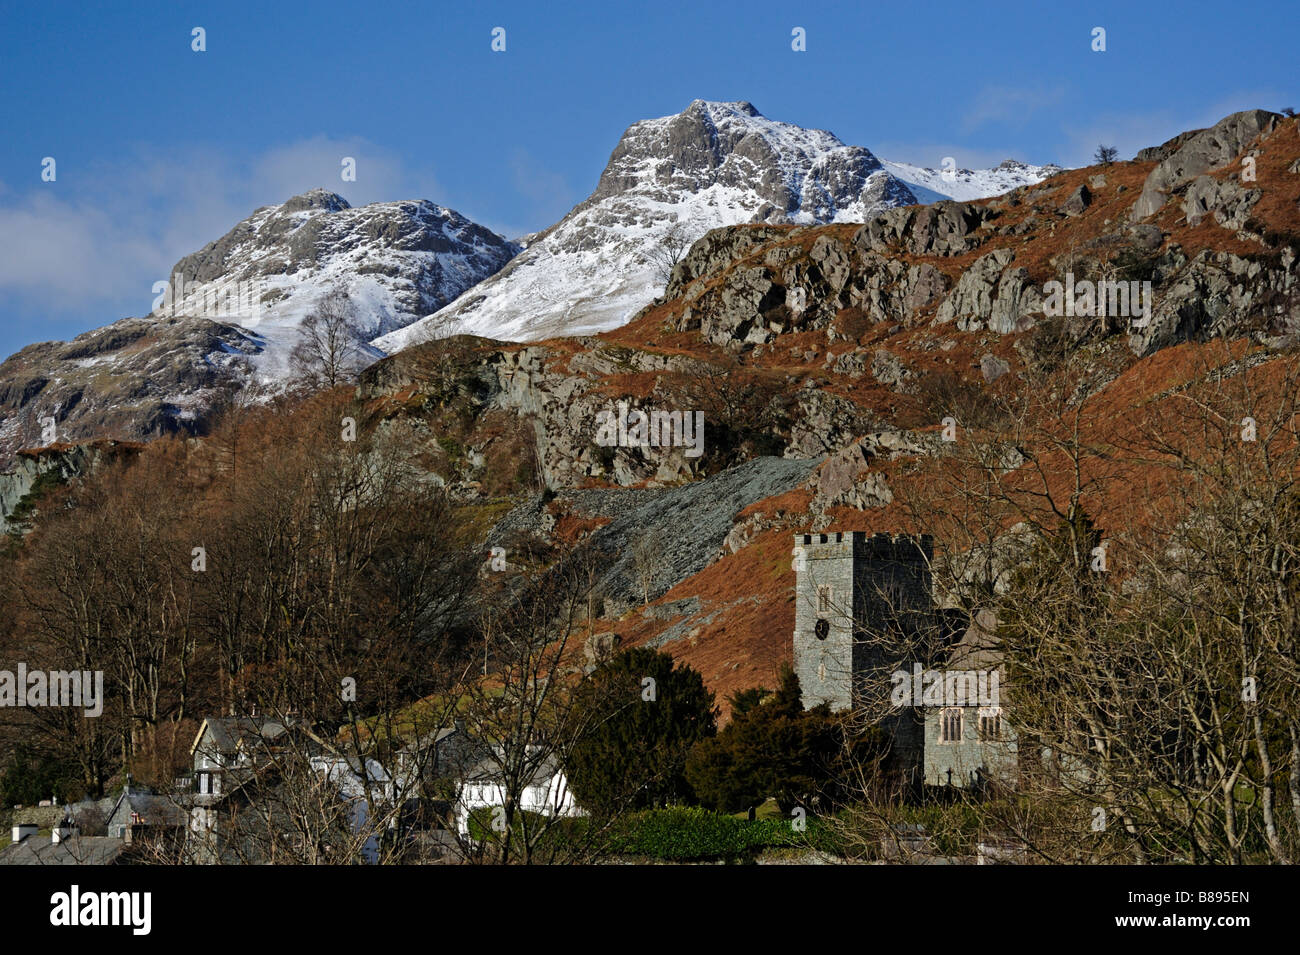 holy-trinity-church-chapel-stile-and-the-langdale-pikes-langdale-lake-B895EN.jpg